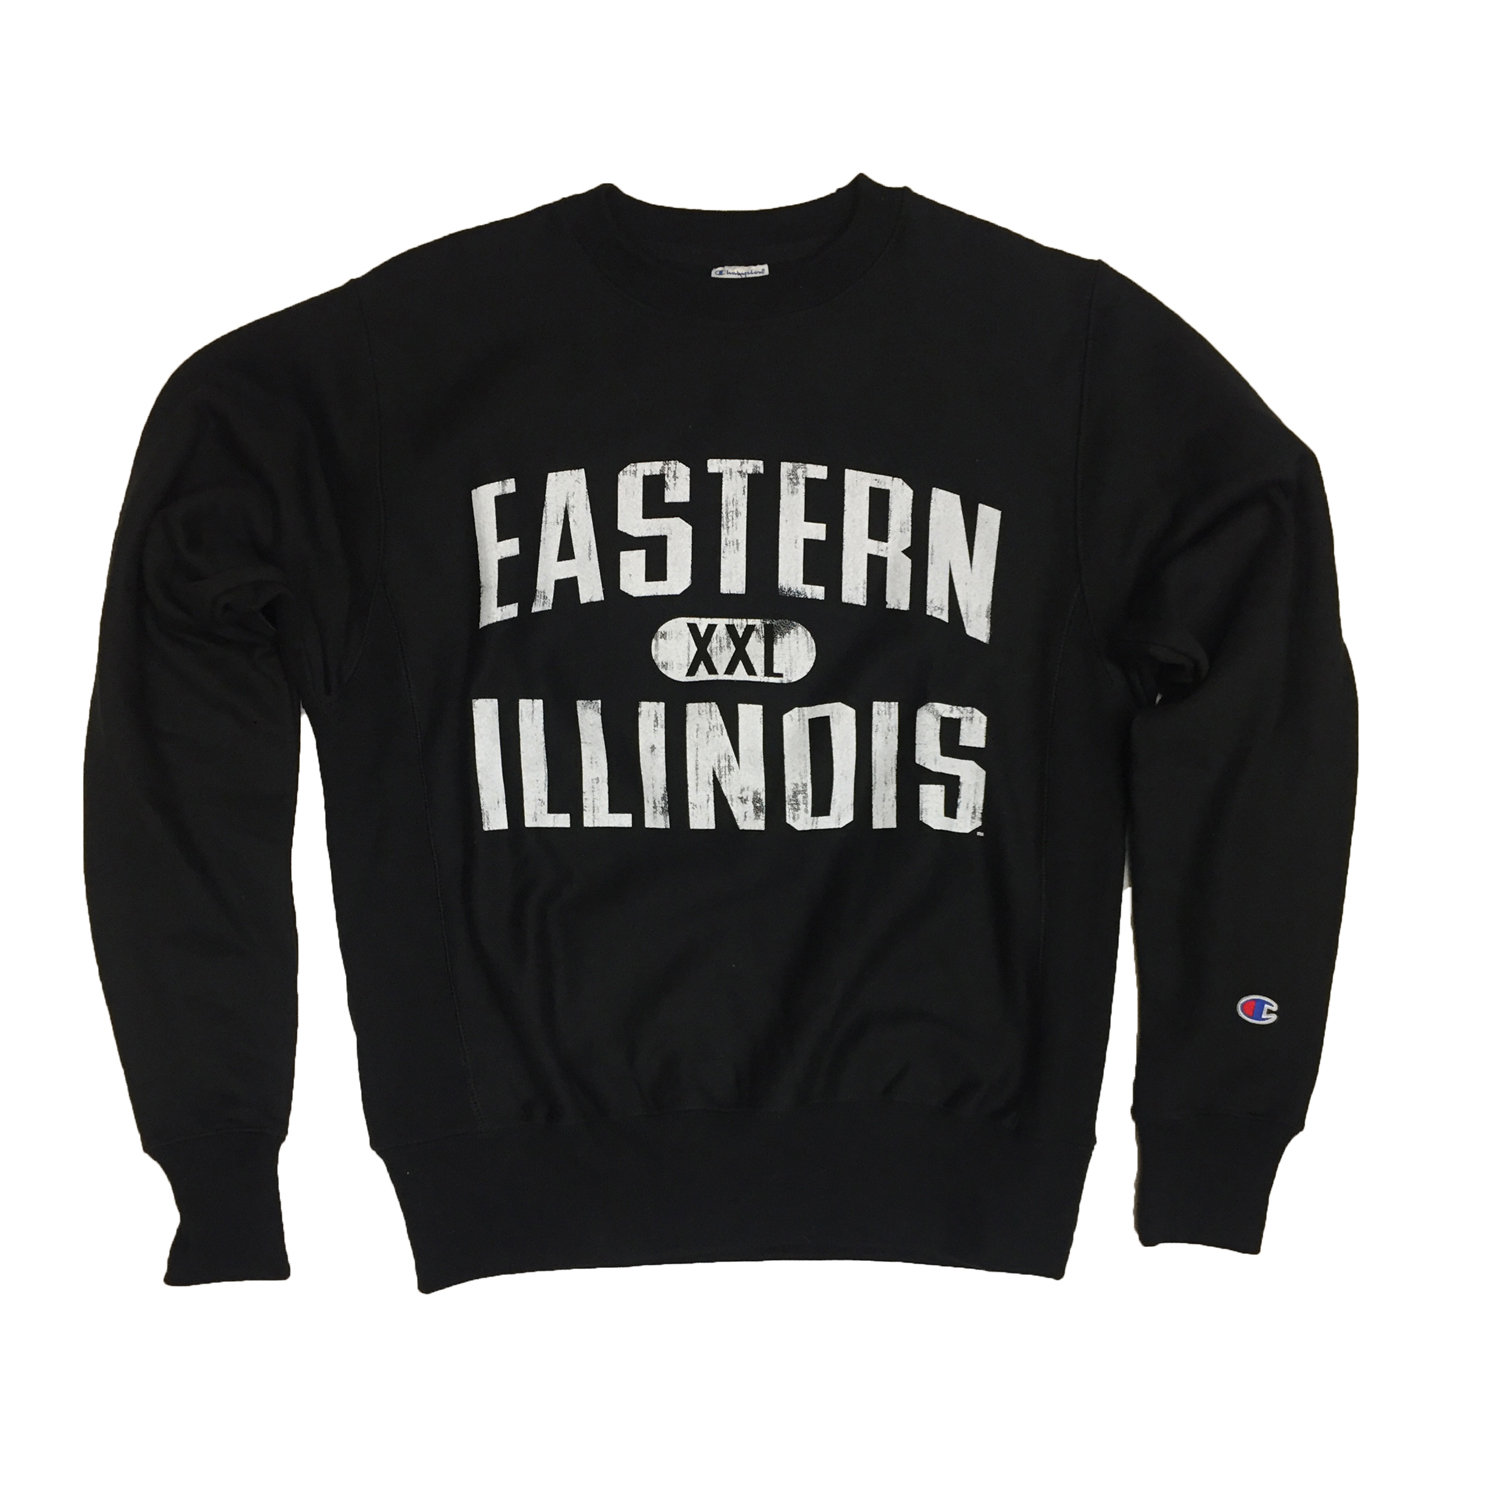 Image For Eastern Illinois Black Fleece Crew